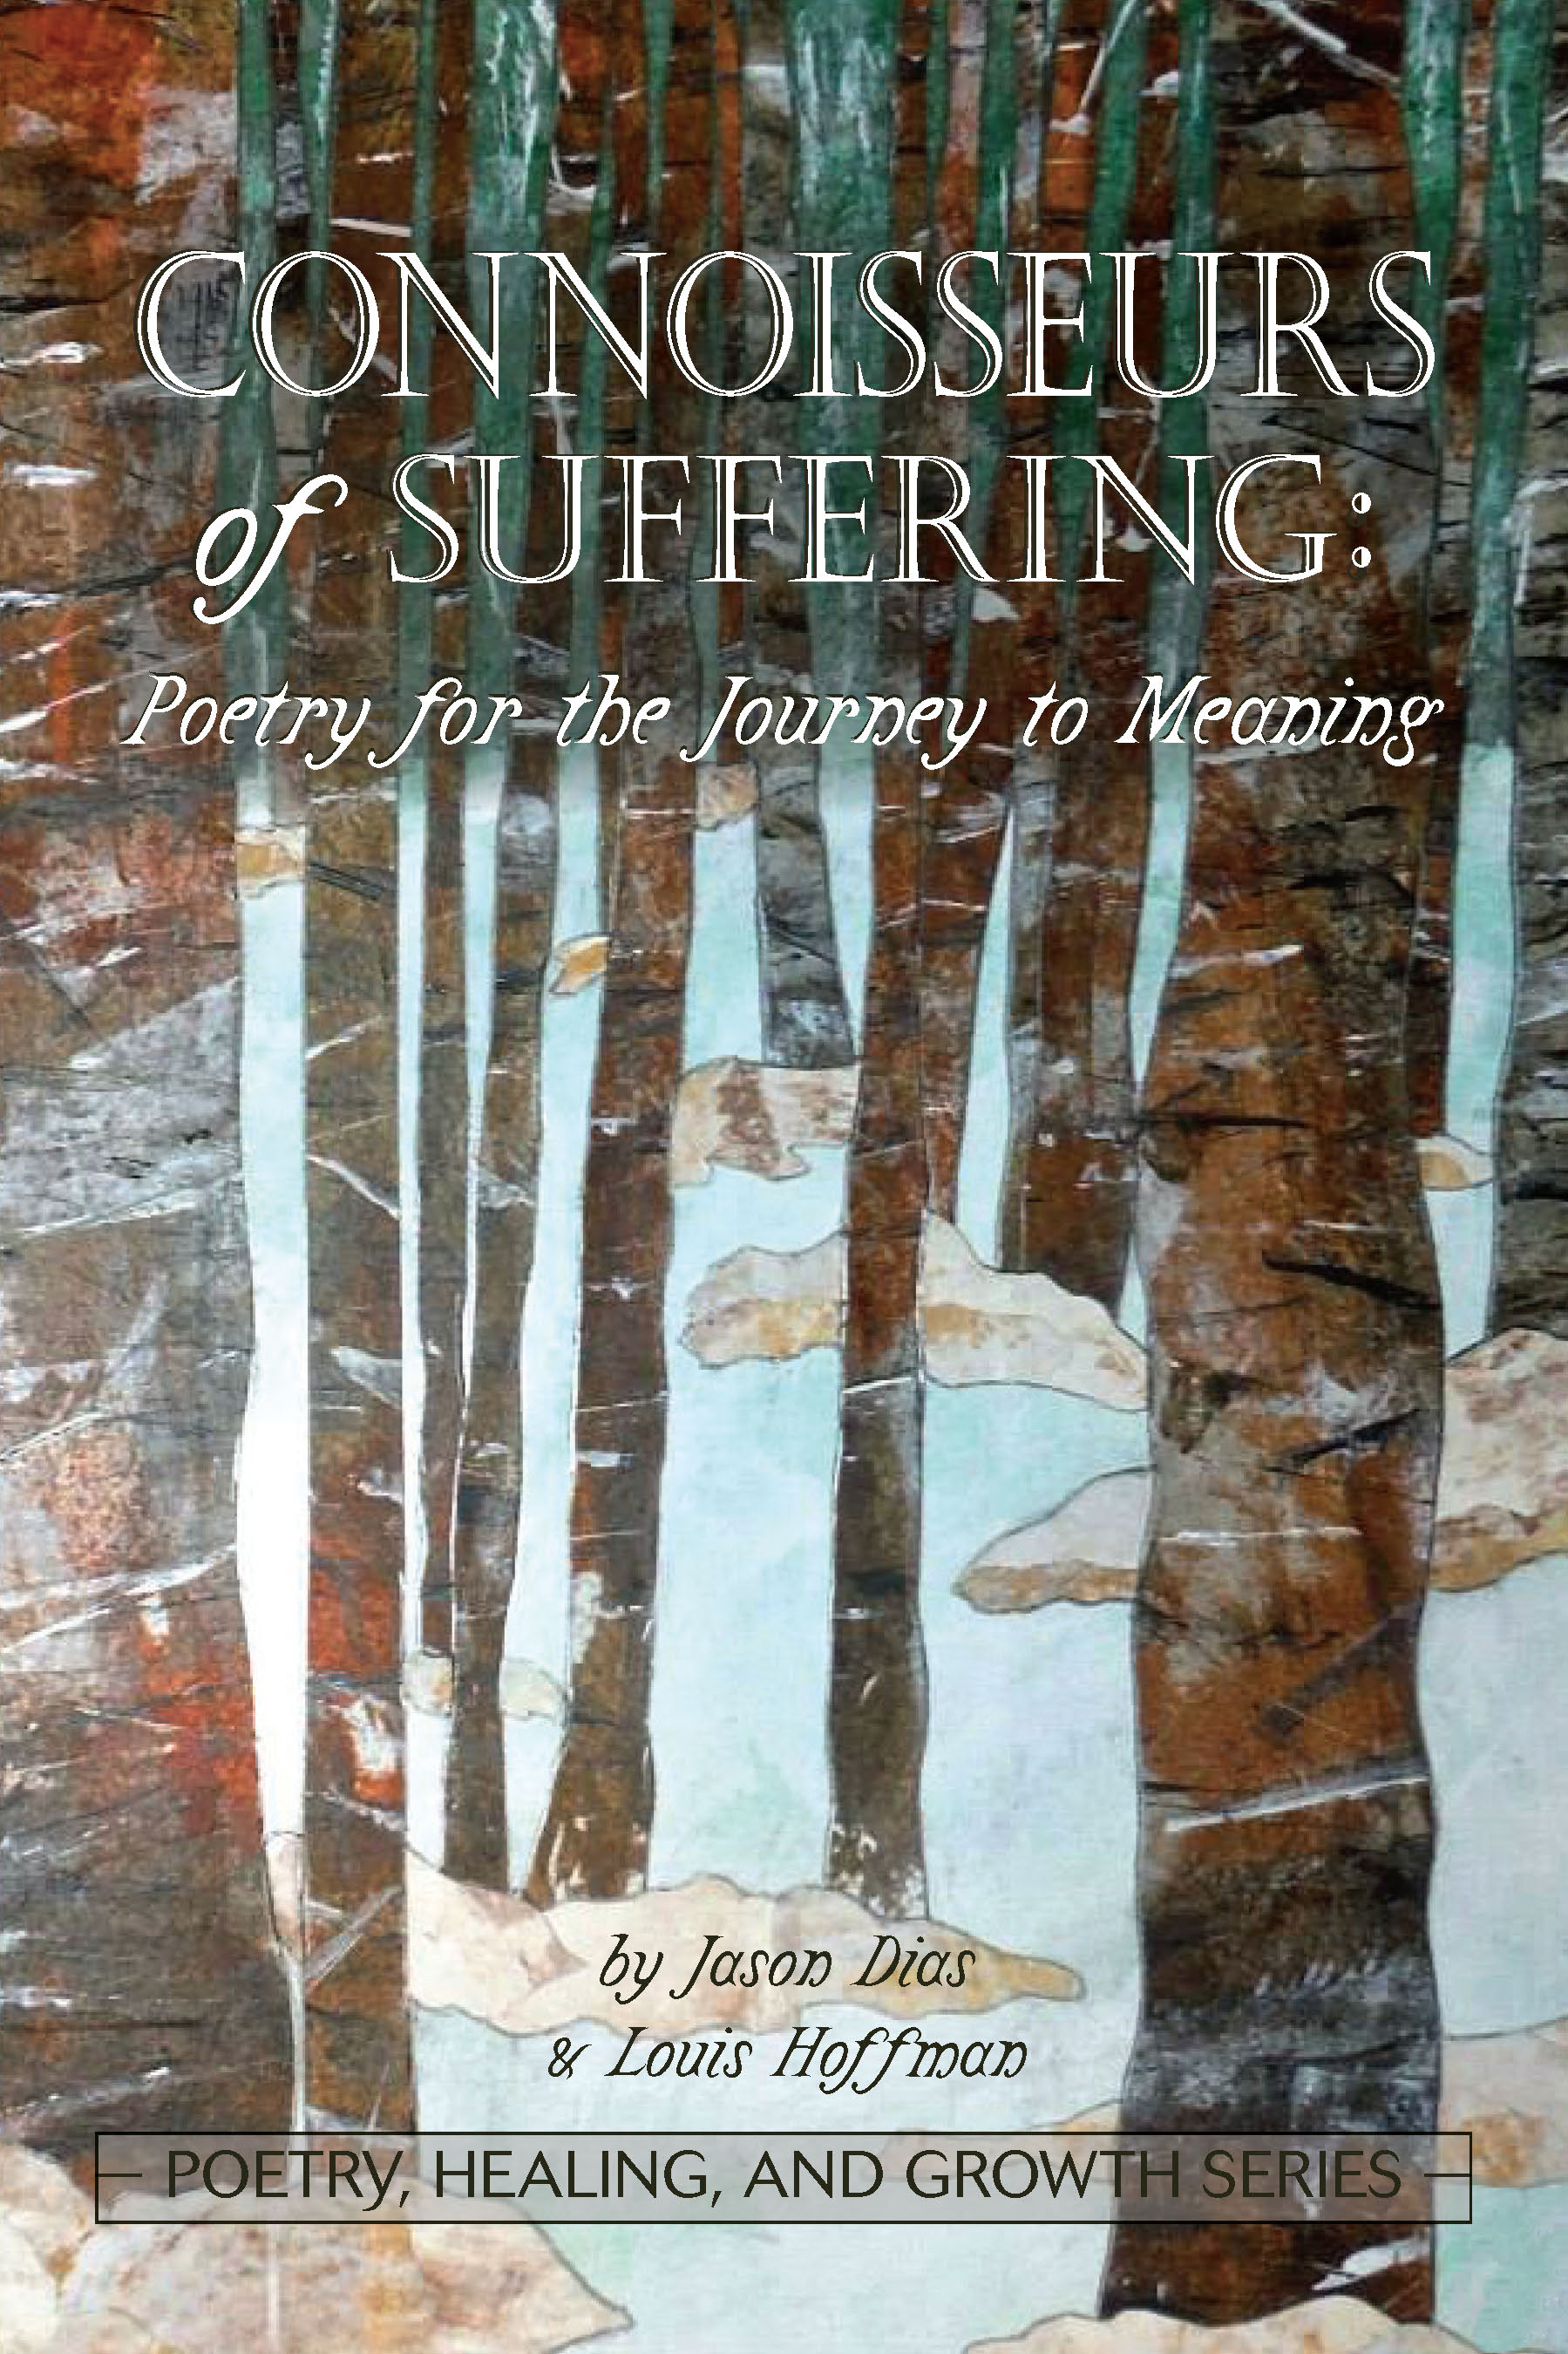 Connoisseurs of Suffering: Poetry for the Journey to Meaning Image